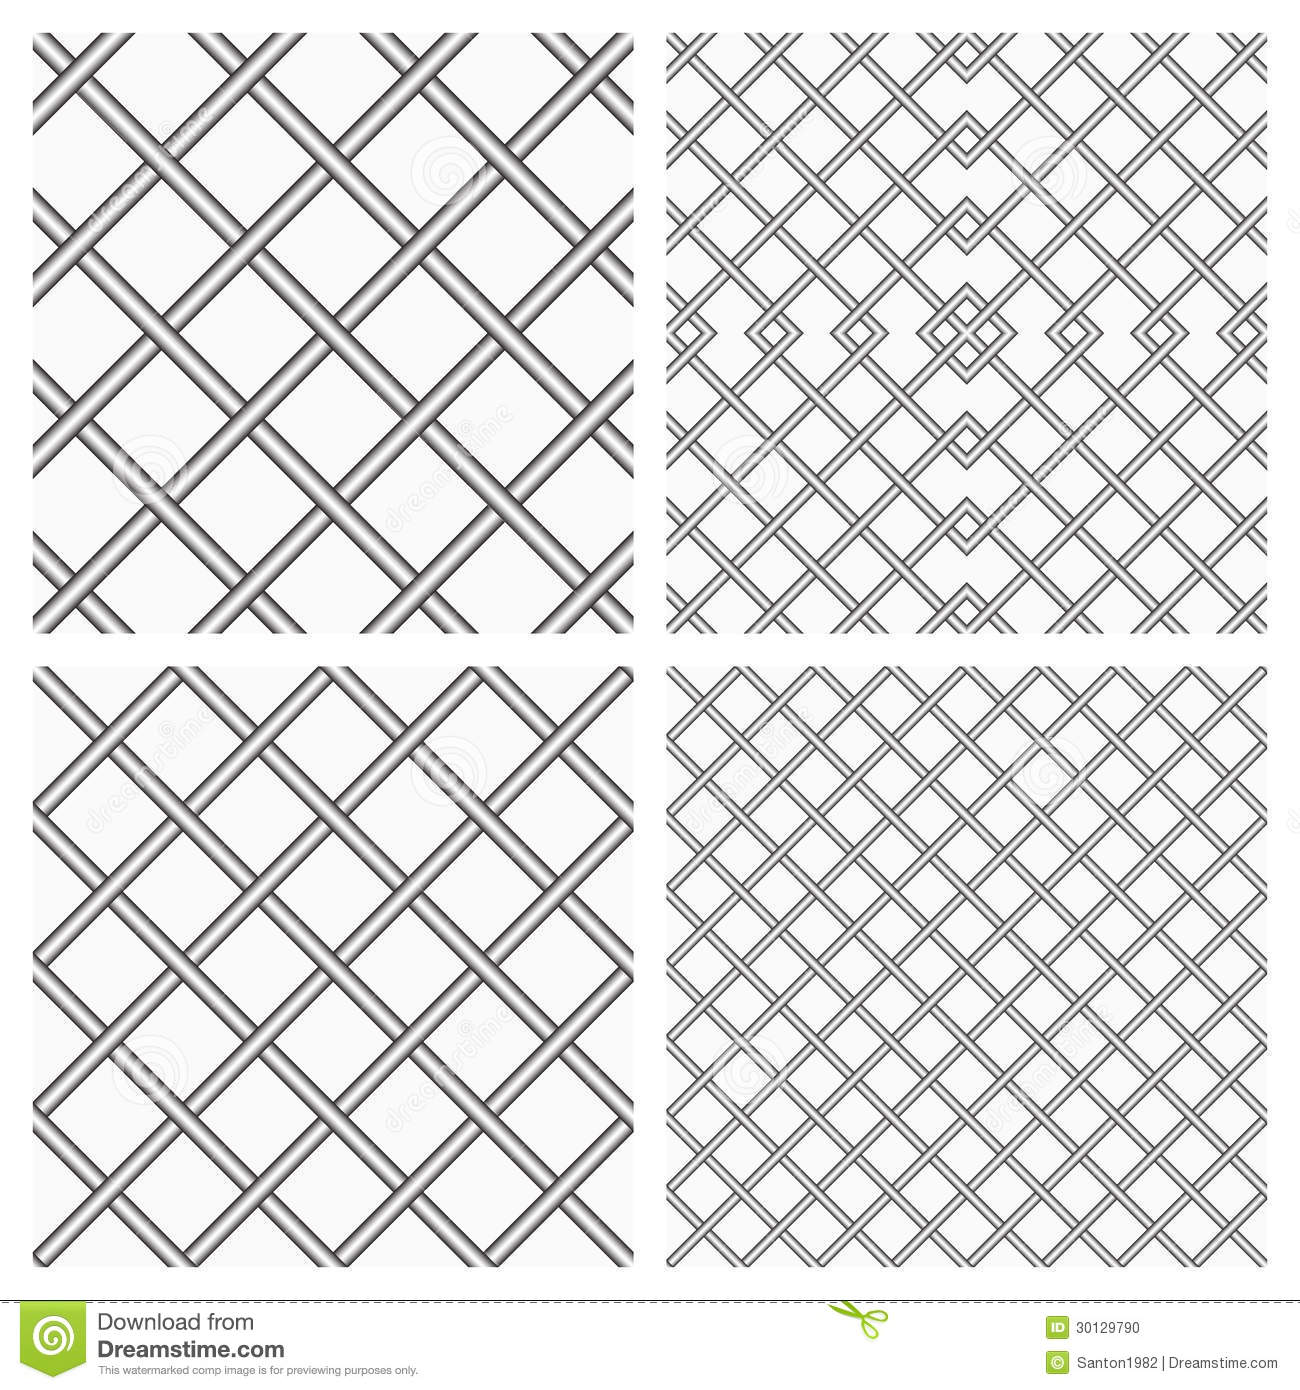 Stock Illustration Brain Doodle Hand Drawn Illustration Image49824049 further  also Stock Illustration Seamless Pattern Branches Thorns Vector Illustration Image73225133 in addition Royalty Free Stock Images Small Headphones Image4698189 further Topic368041. on audio wire